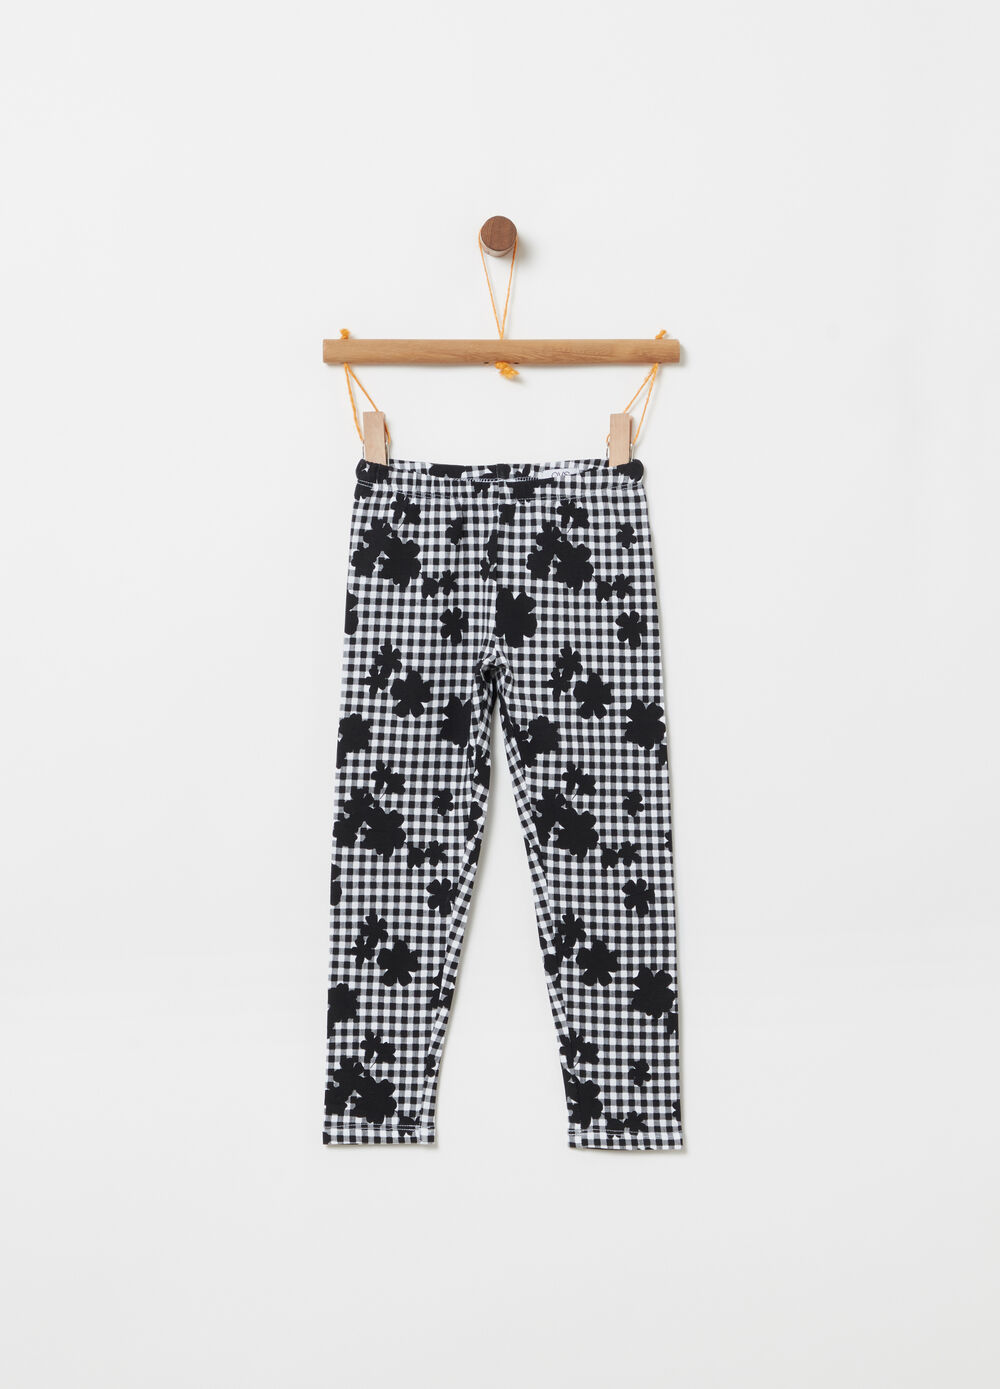 Lightweight fleece leggings with Vichy flowers pattern